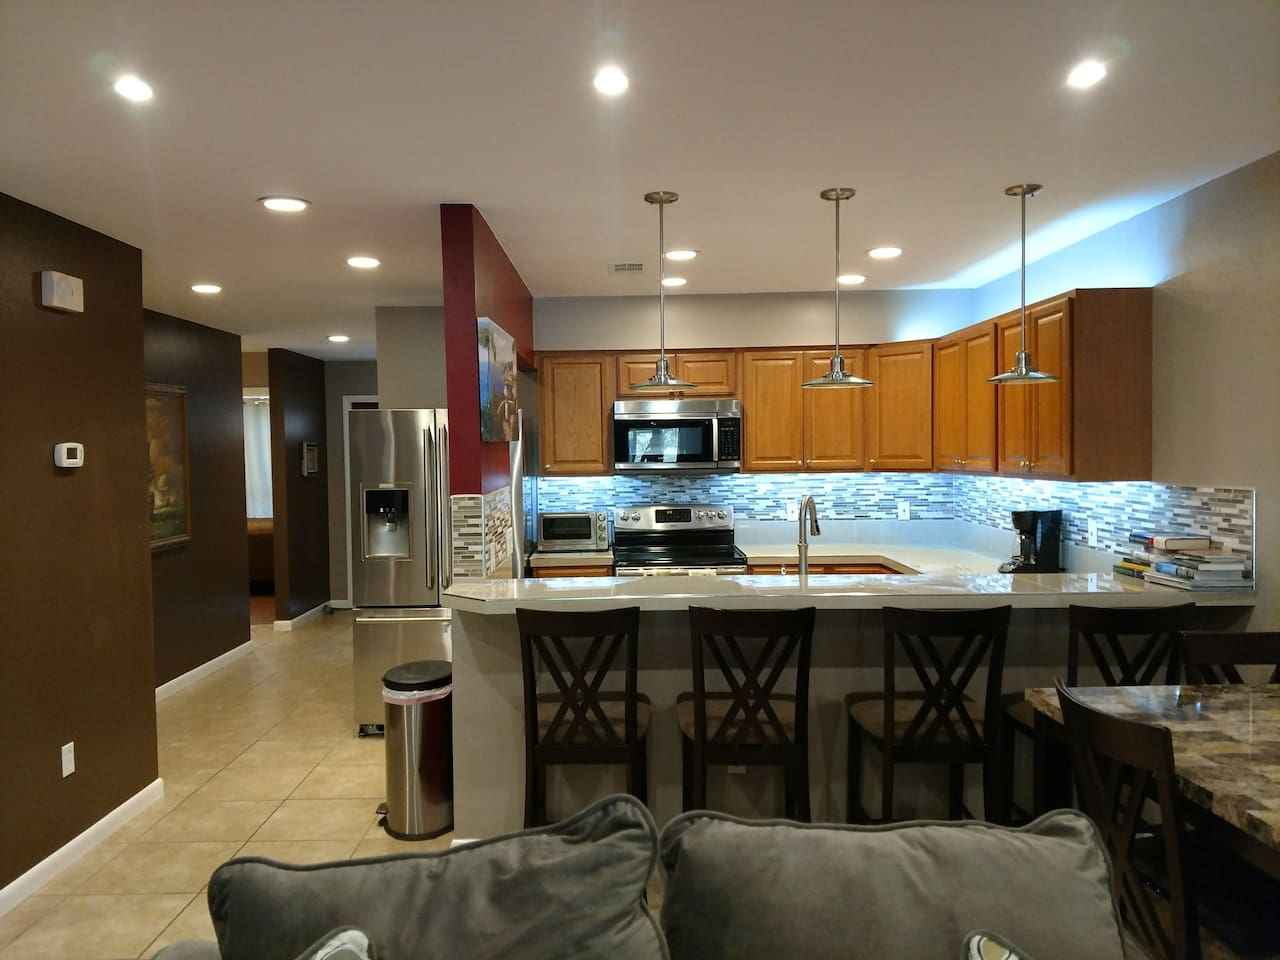 Kitchen with Bartop and all stainless steel appliances.